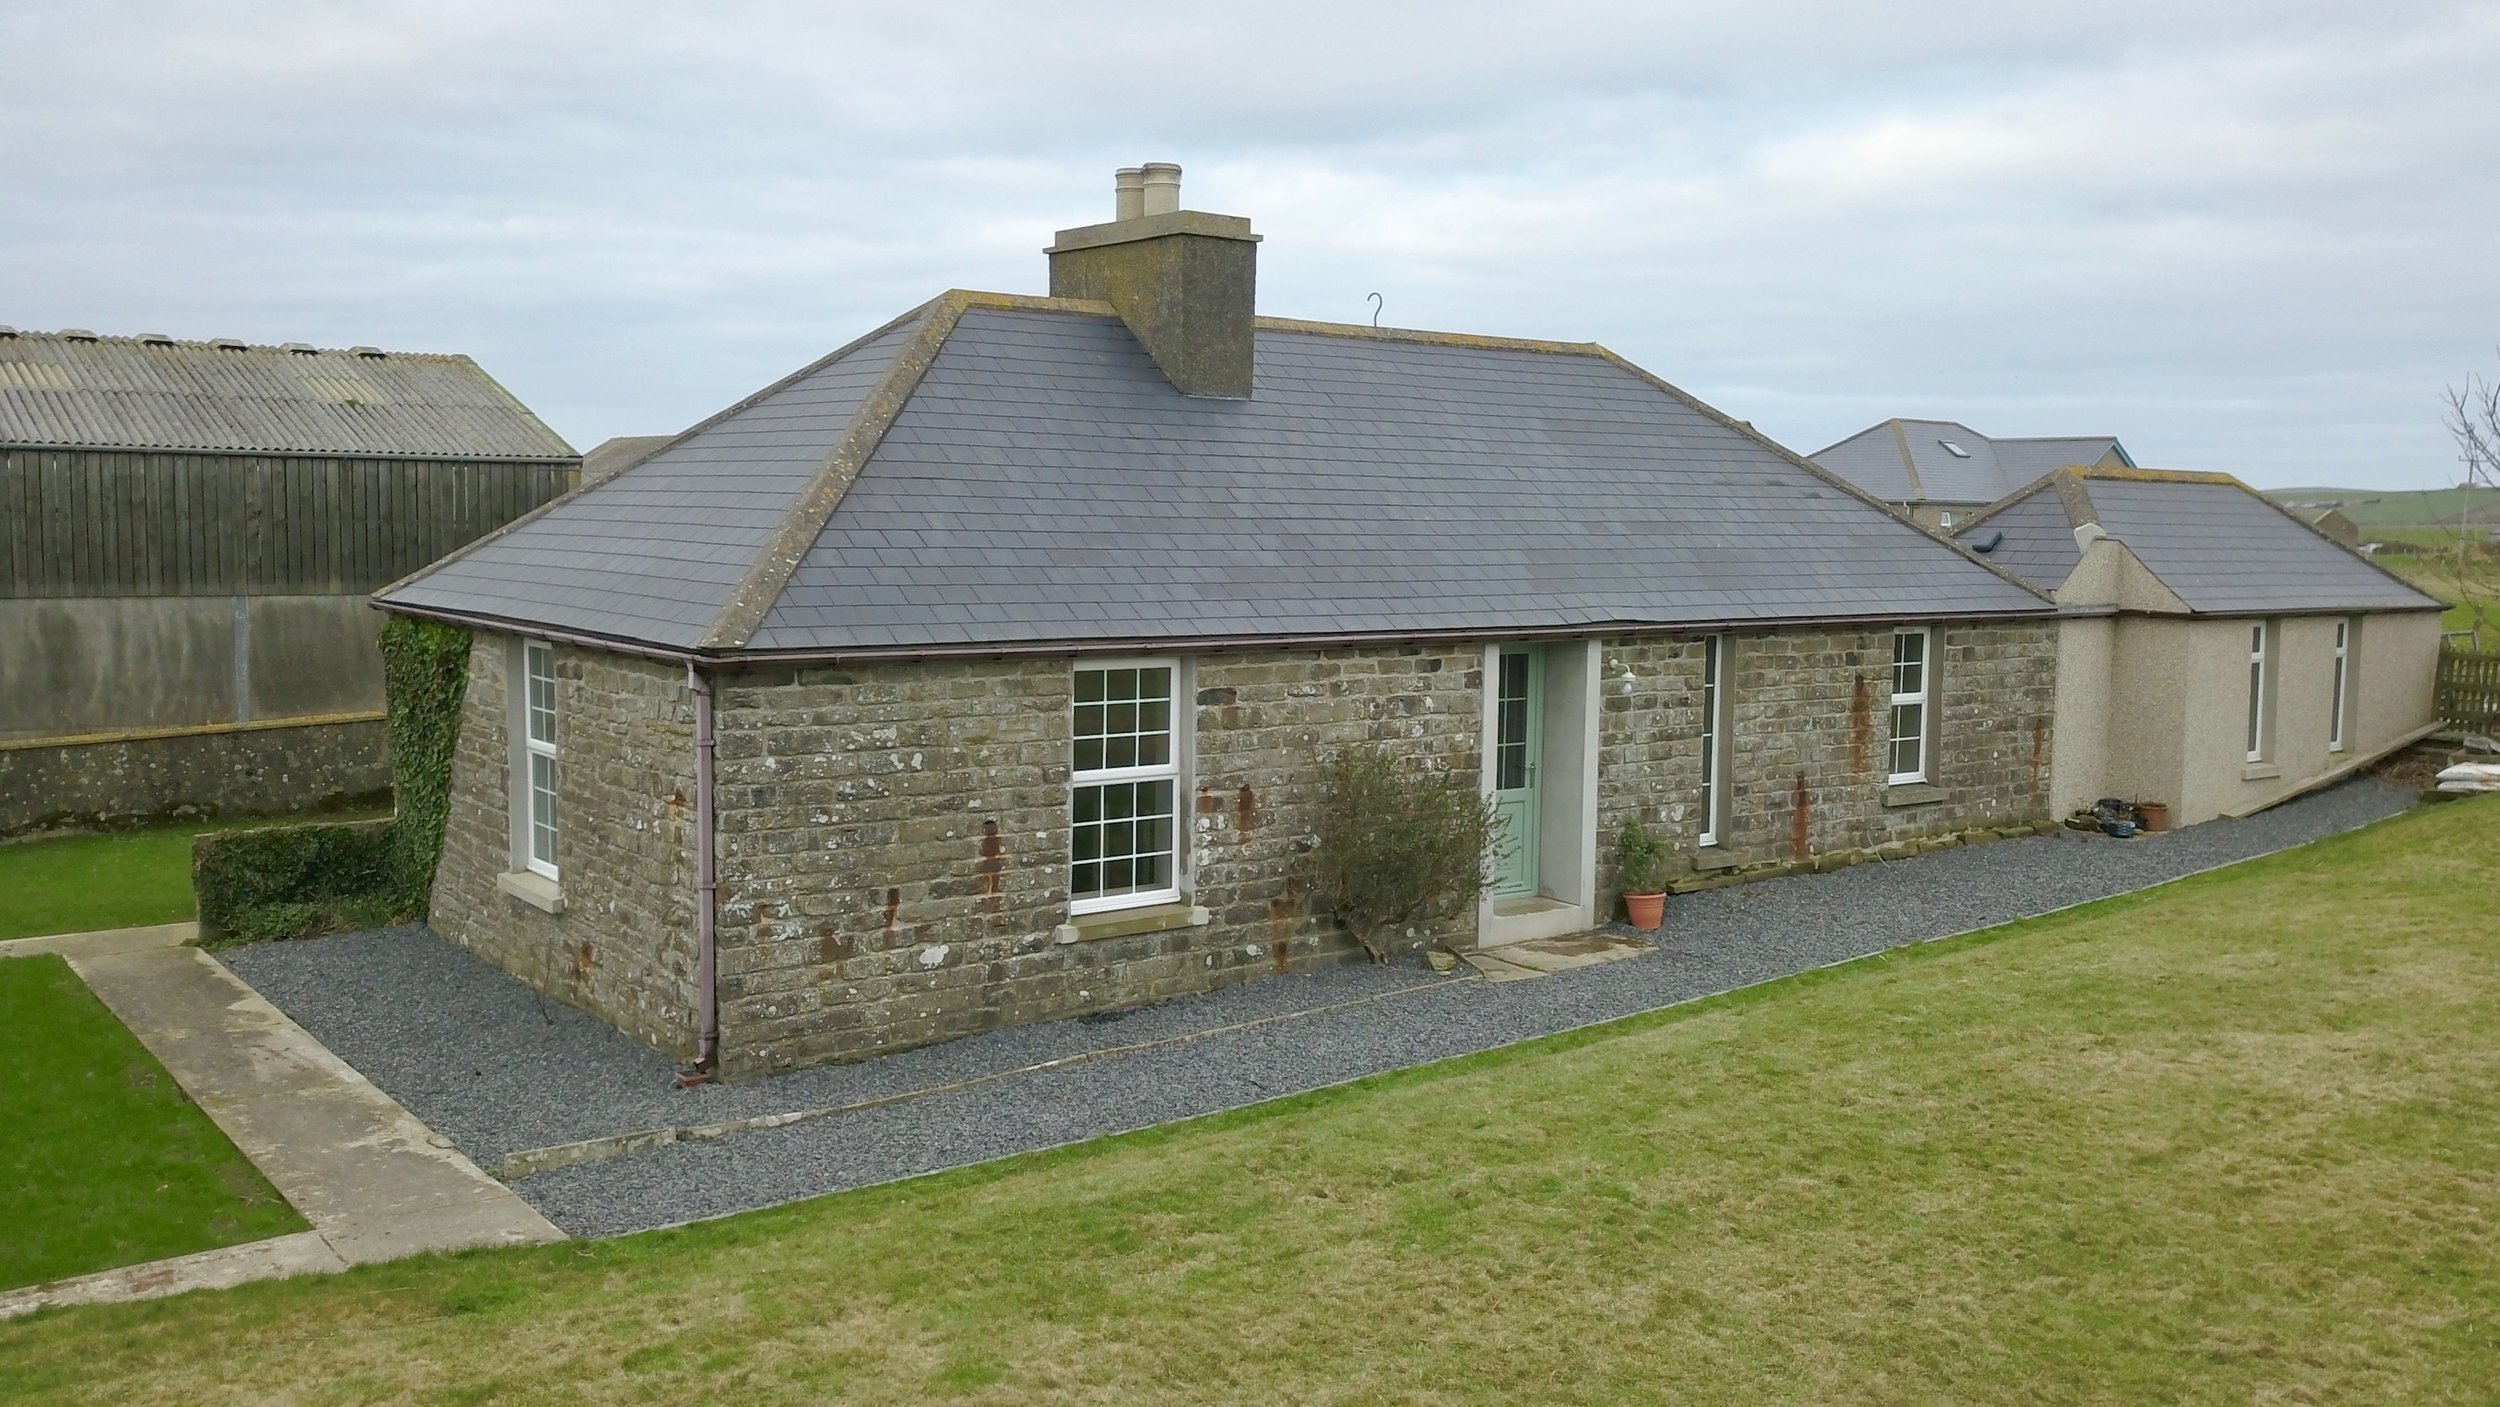 Welcome to Howan Cottage - A charming, newly renovated self-catering cottage situated on a family farm in the heart of Orkney's West Mainland.